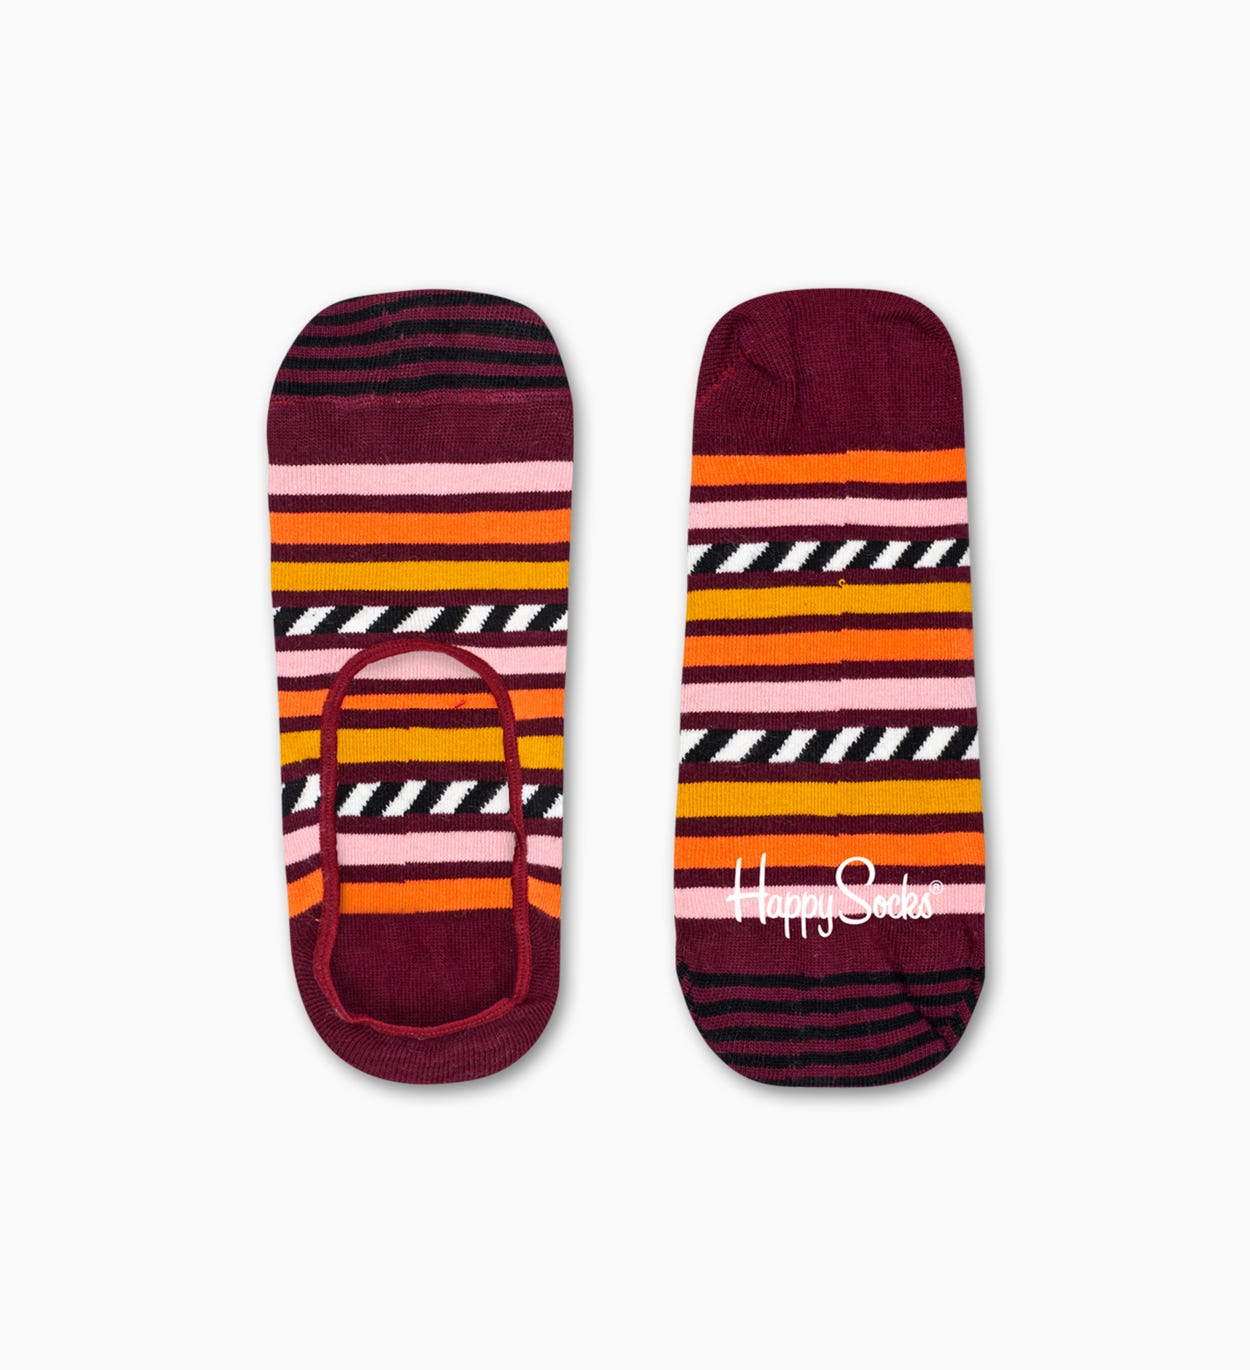 Burgunder Füßlinge: Stripe And Stripe Design | Happy Socks